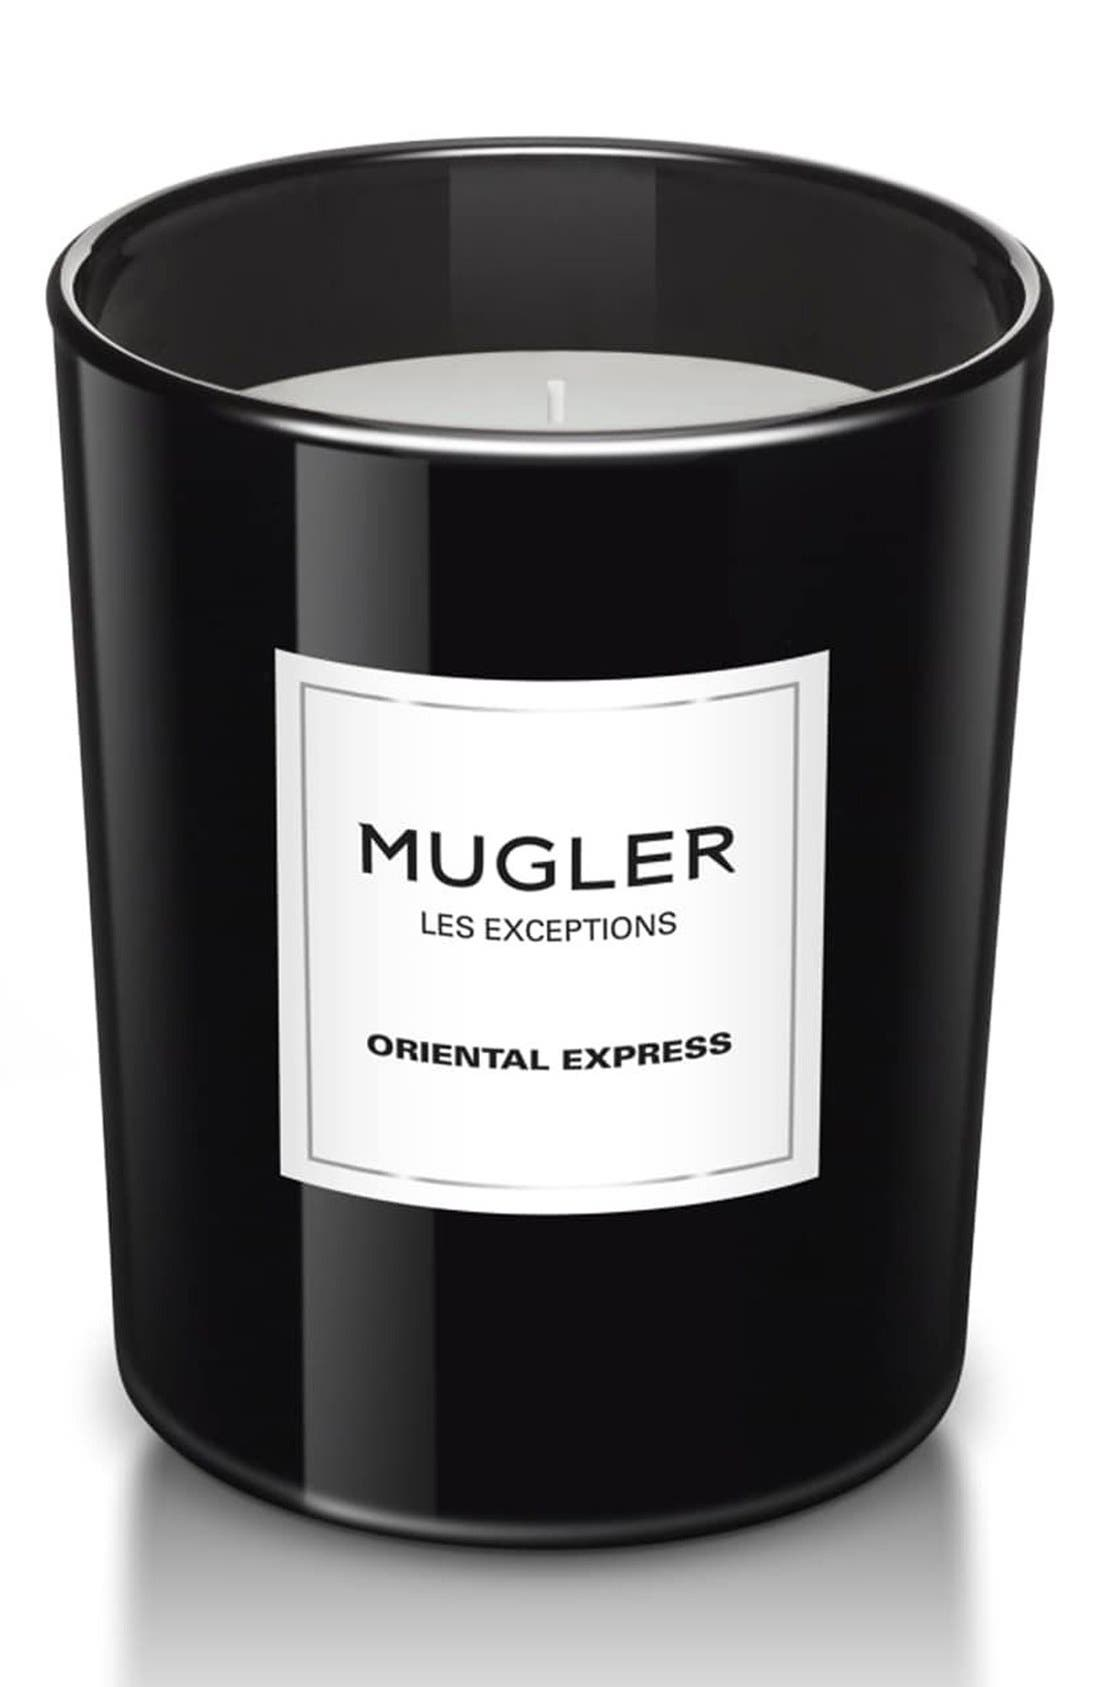 Mugler 'Les Exceptions - Oriental Express' Candle